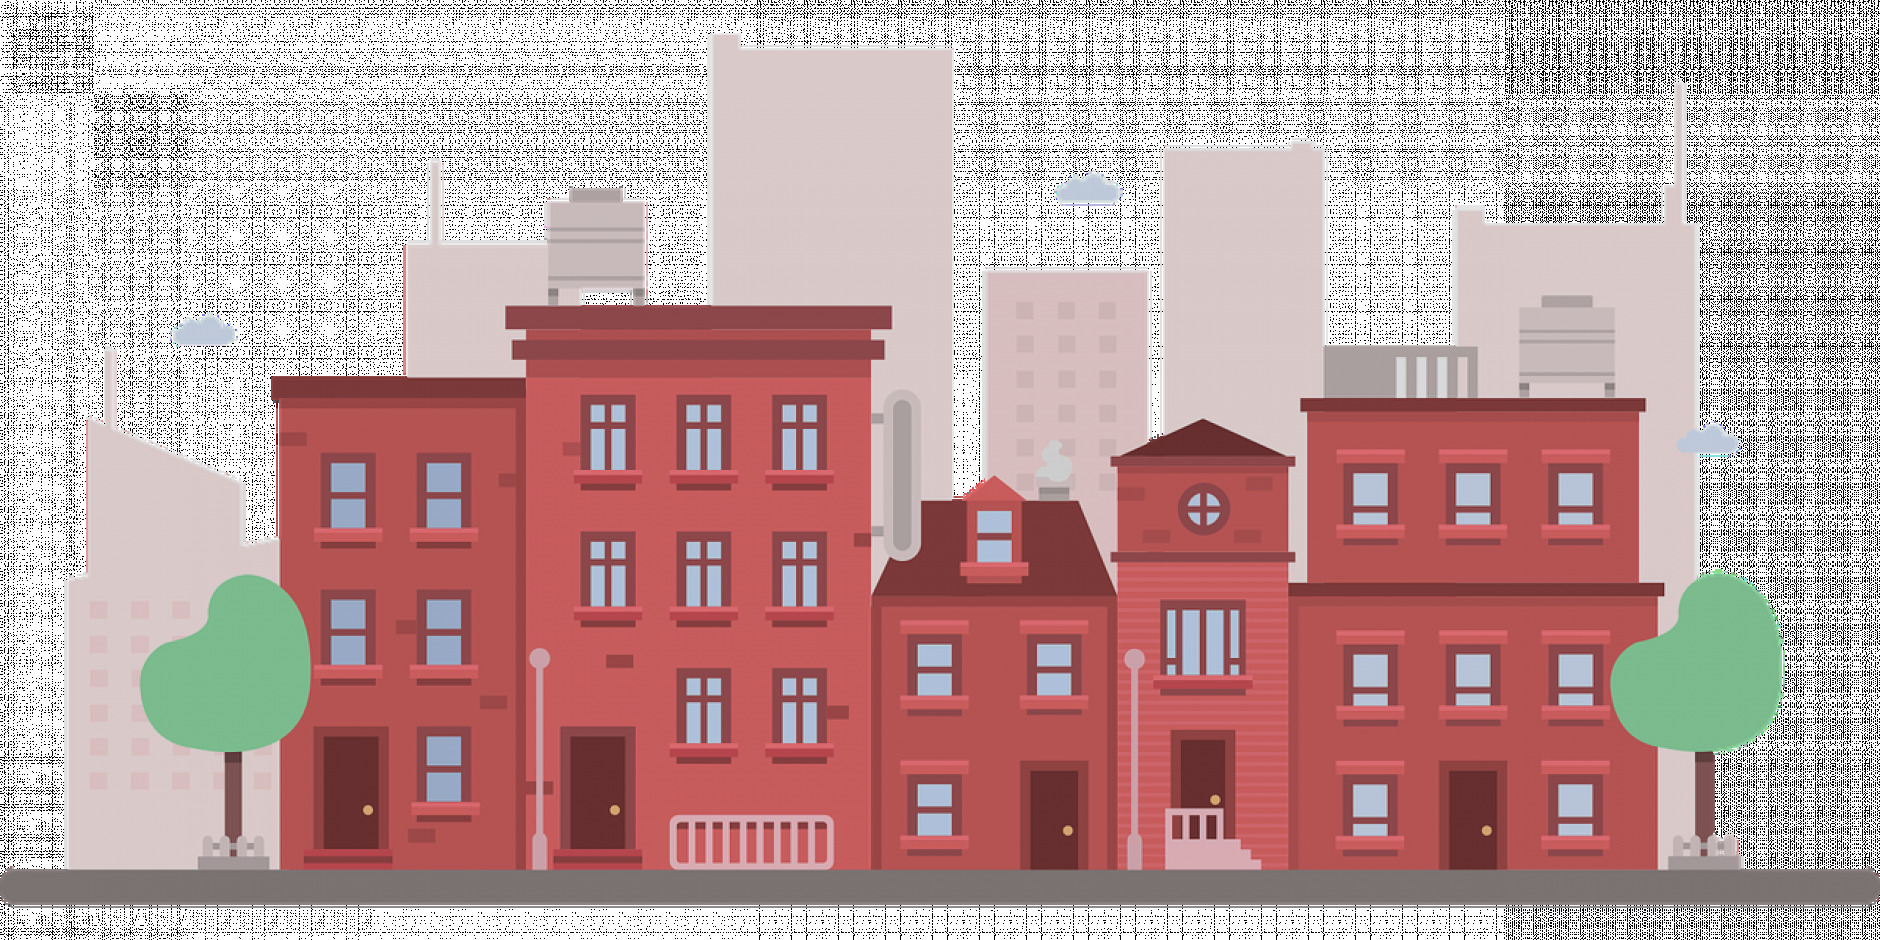 Apartment clipart transparent. Latest of building clip